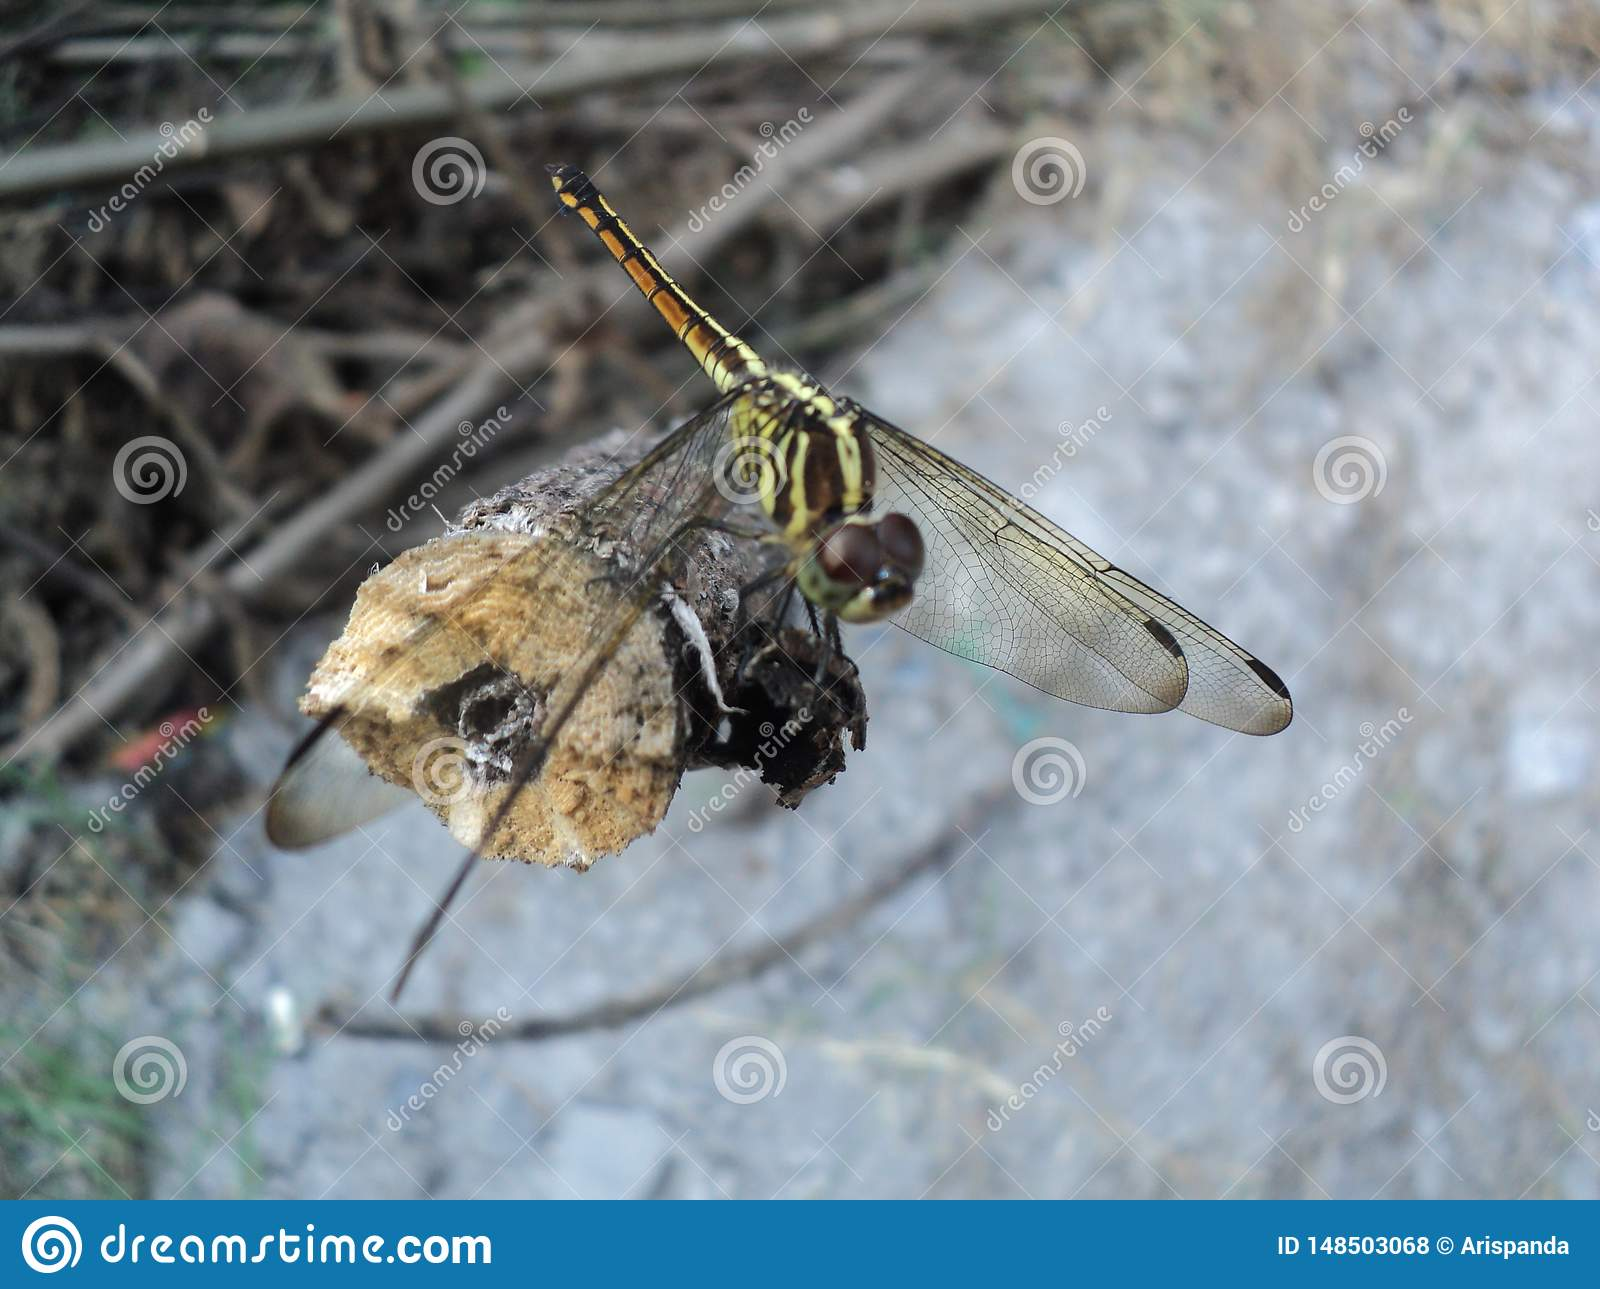 Dragonflies perched on wooden